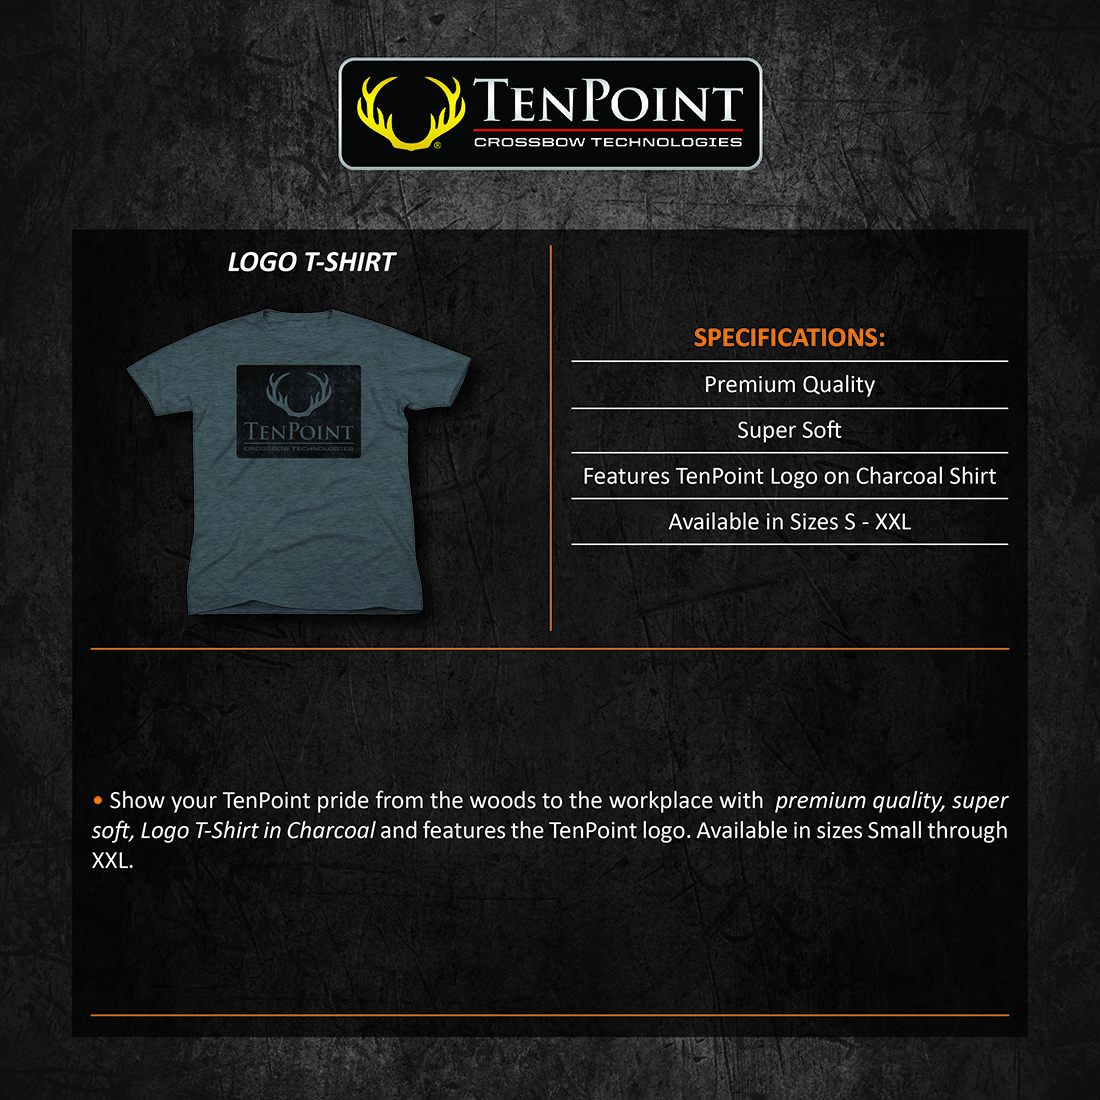 TenPoint_Logo_Tshirt_Charcoal_Product_Description